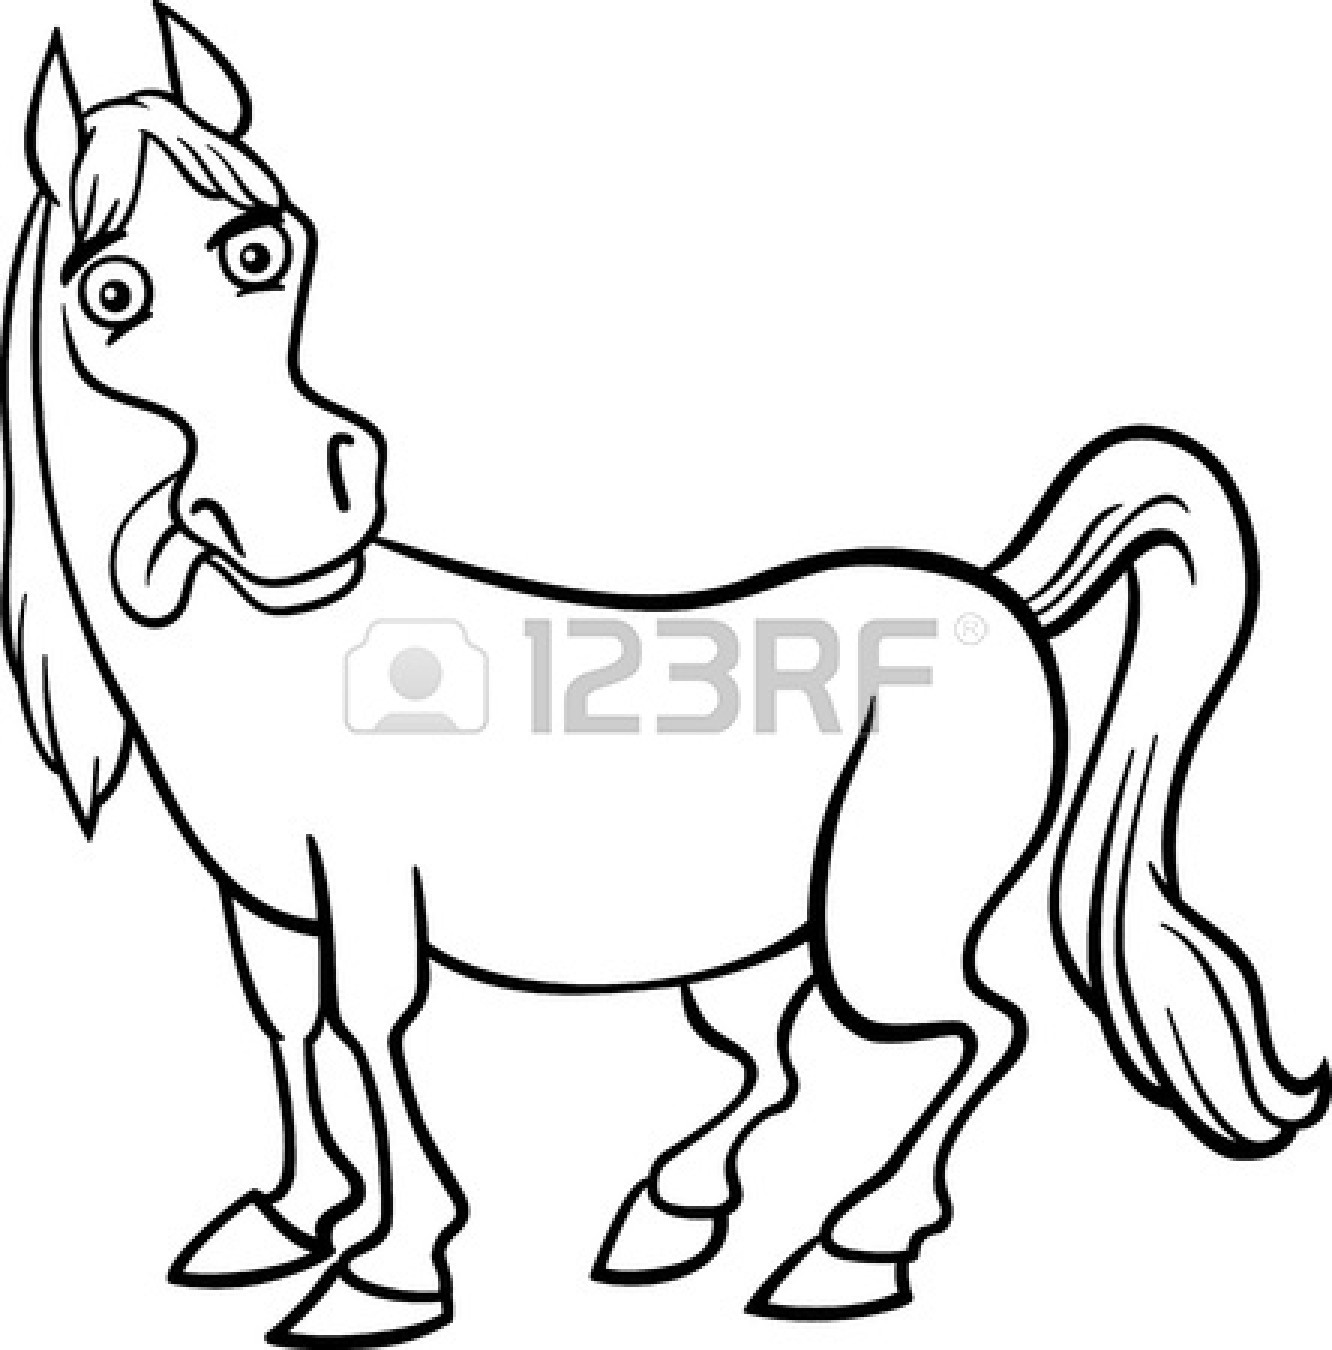 1332x1350 Farm Animal Black And White Clipart